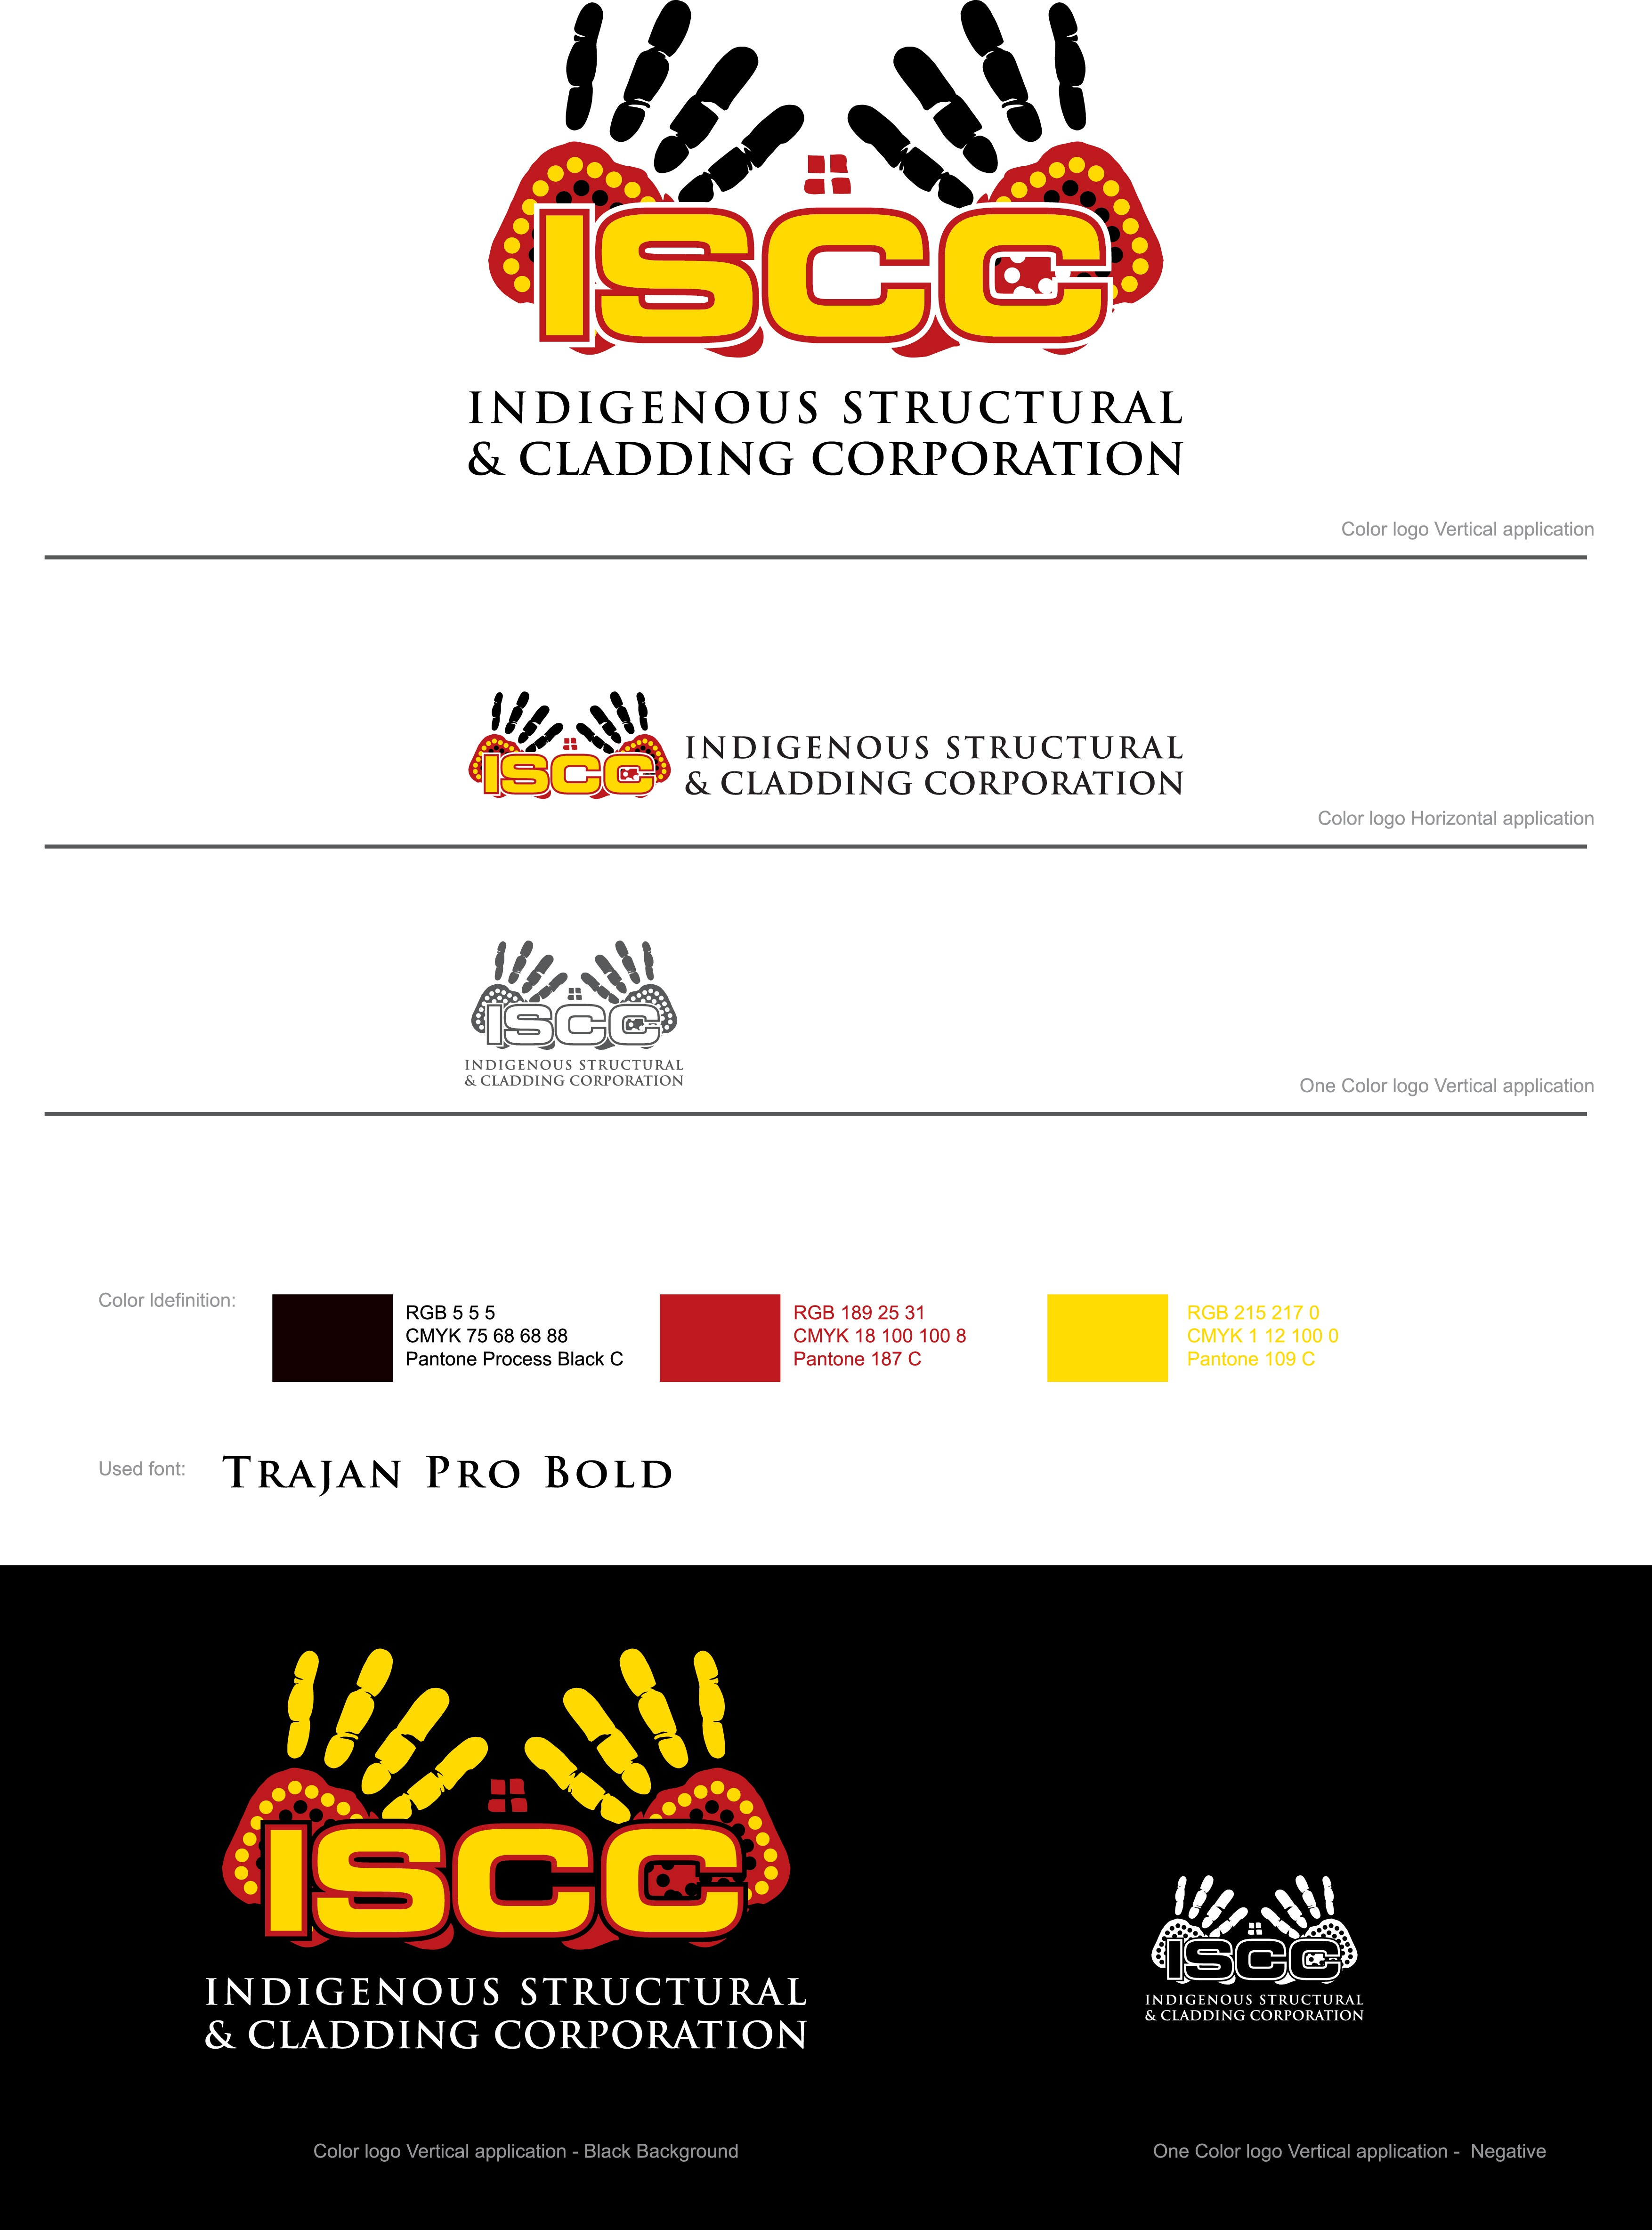 ISCC needs a new corporate look!